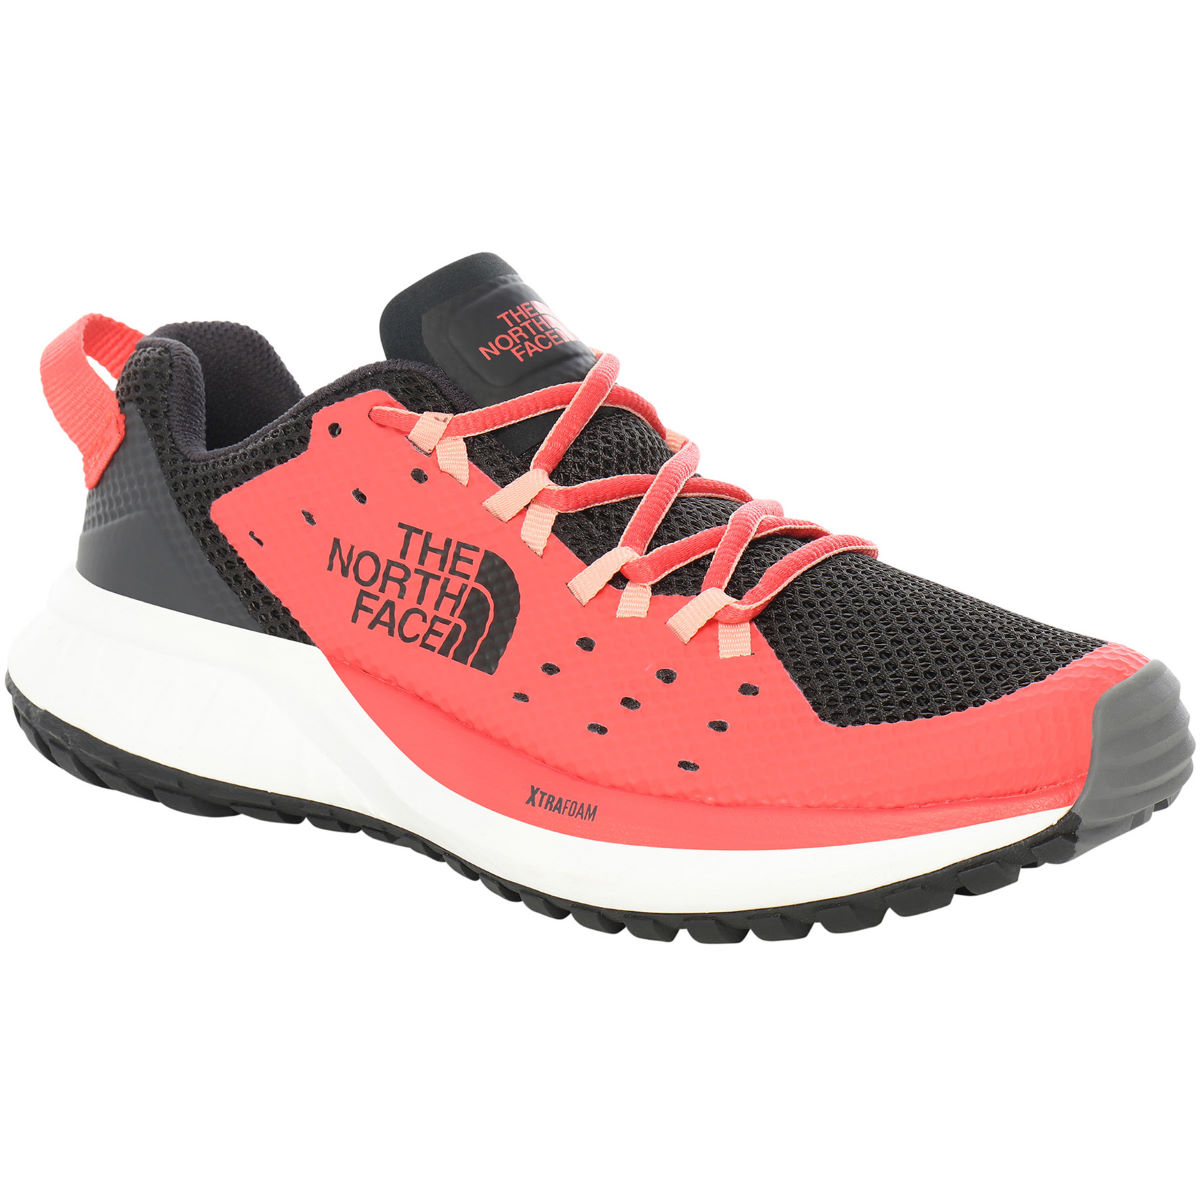 The North Face The North Face Women's Ultra Endurance Xf Trail Shoes   Trail Shoes